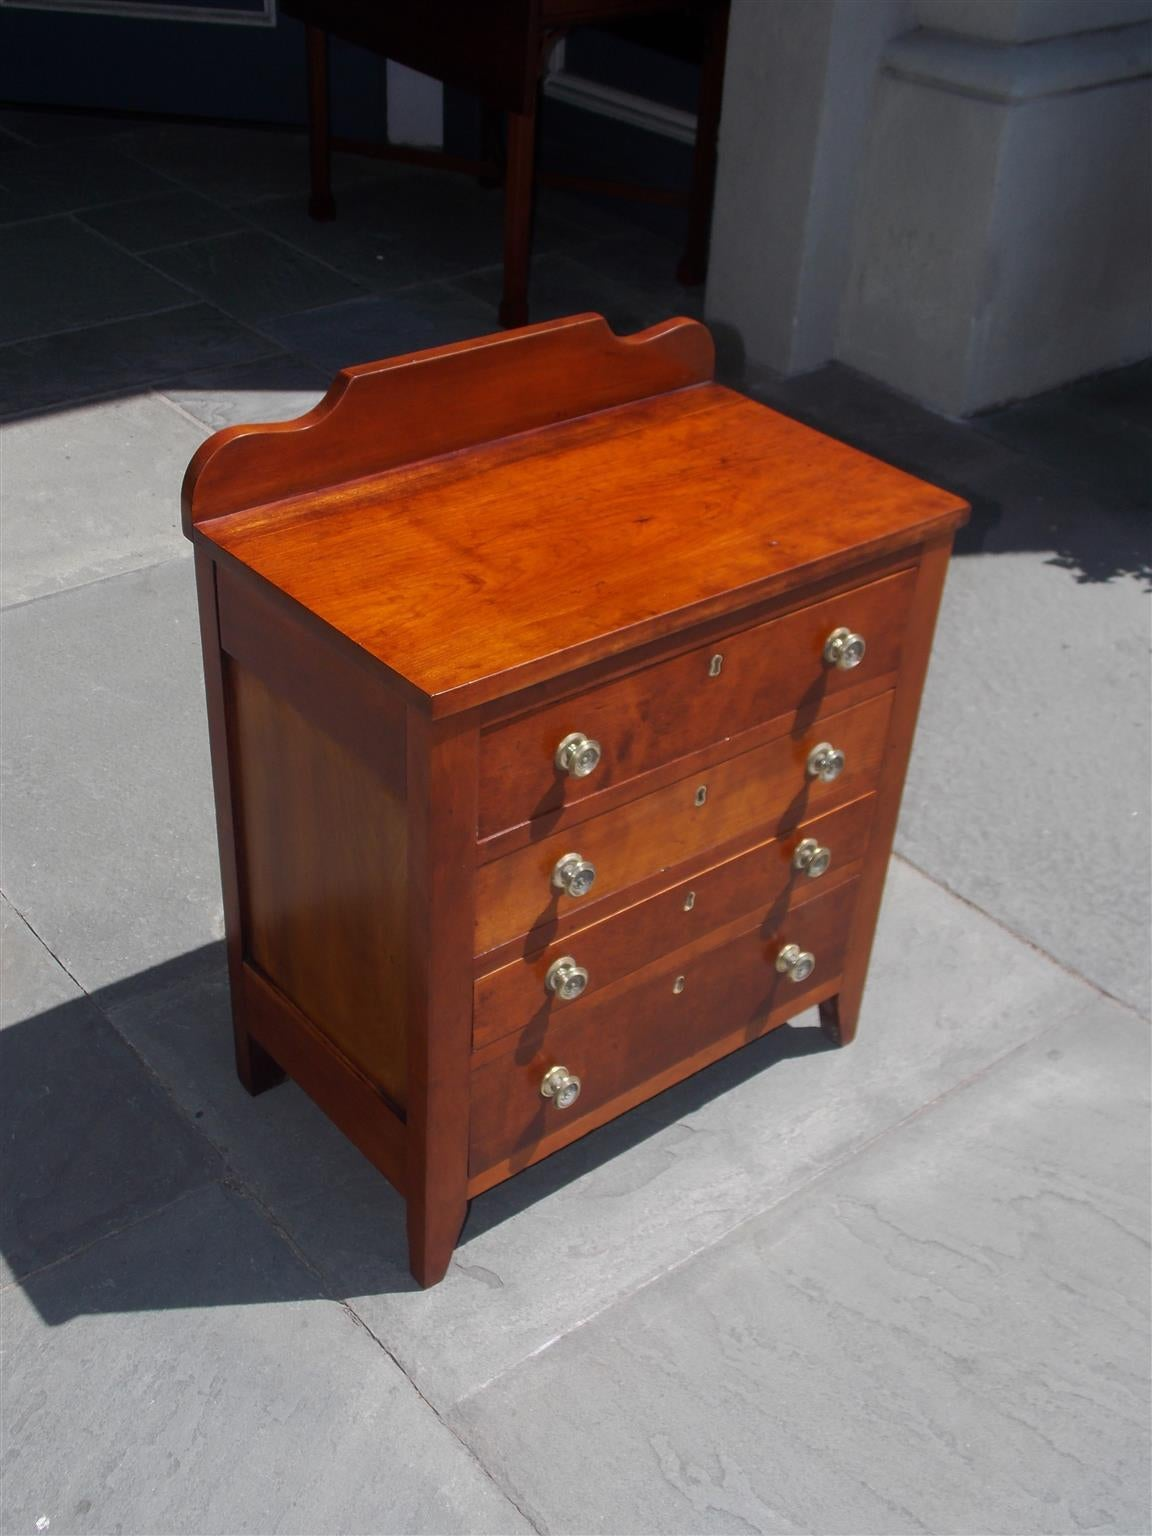 American Colonial American Cherry Diminutive Chest of Drawers, Circa 1810 For Sale